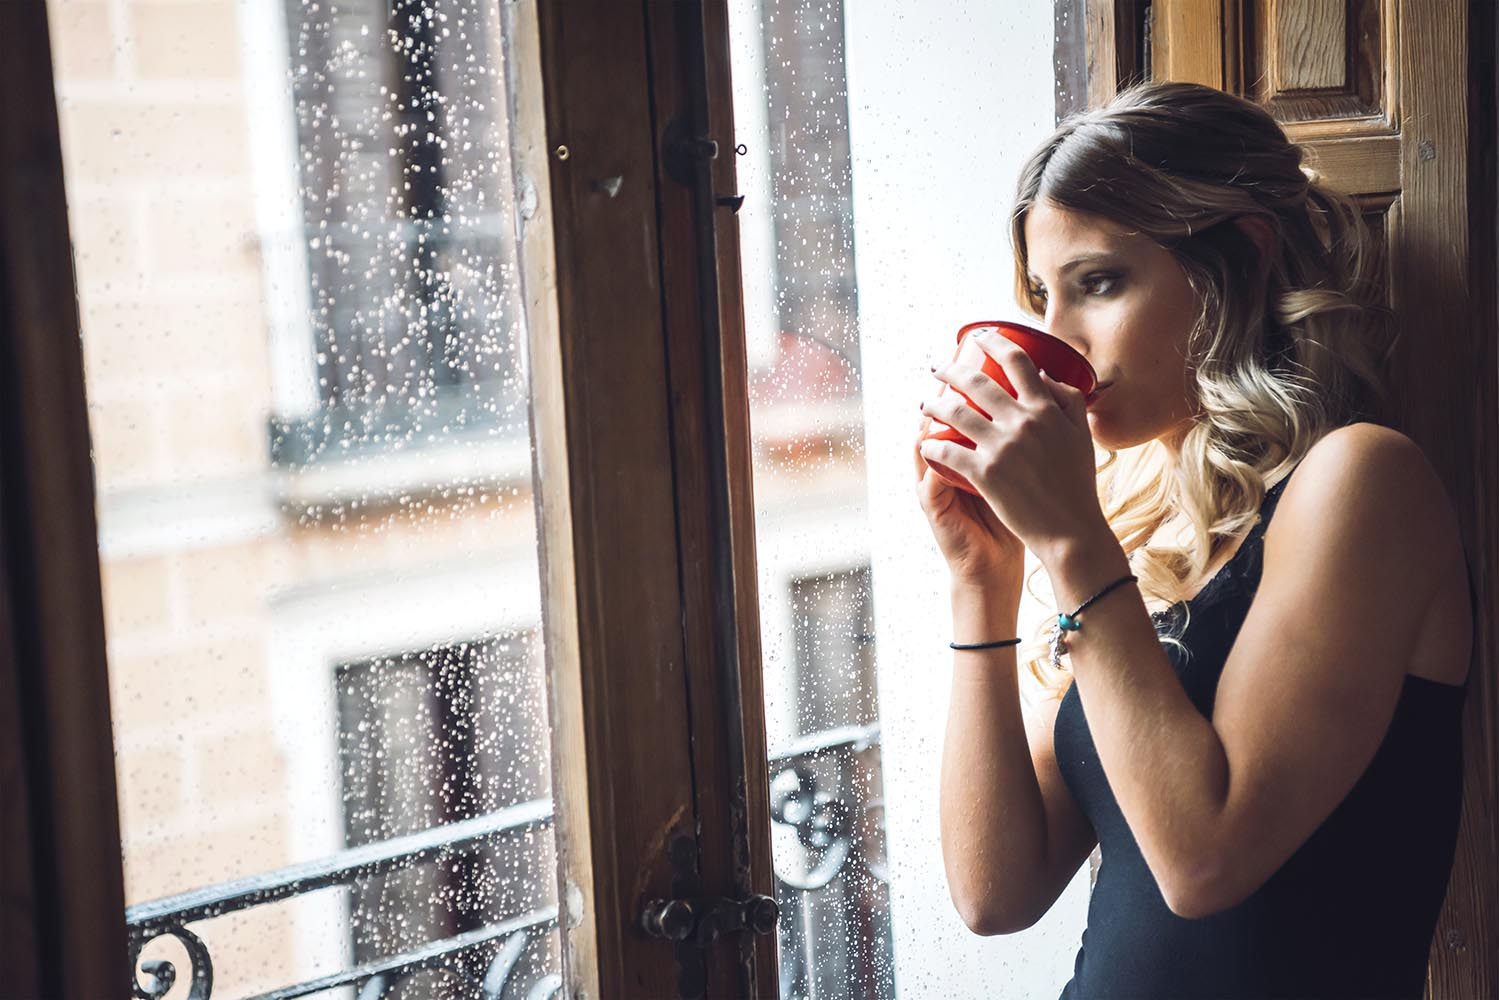 Attractive female drinking and looking at rain